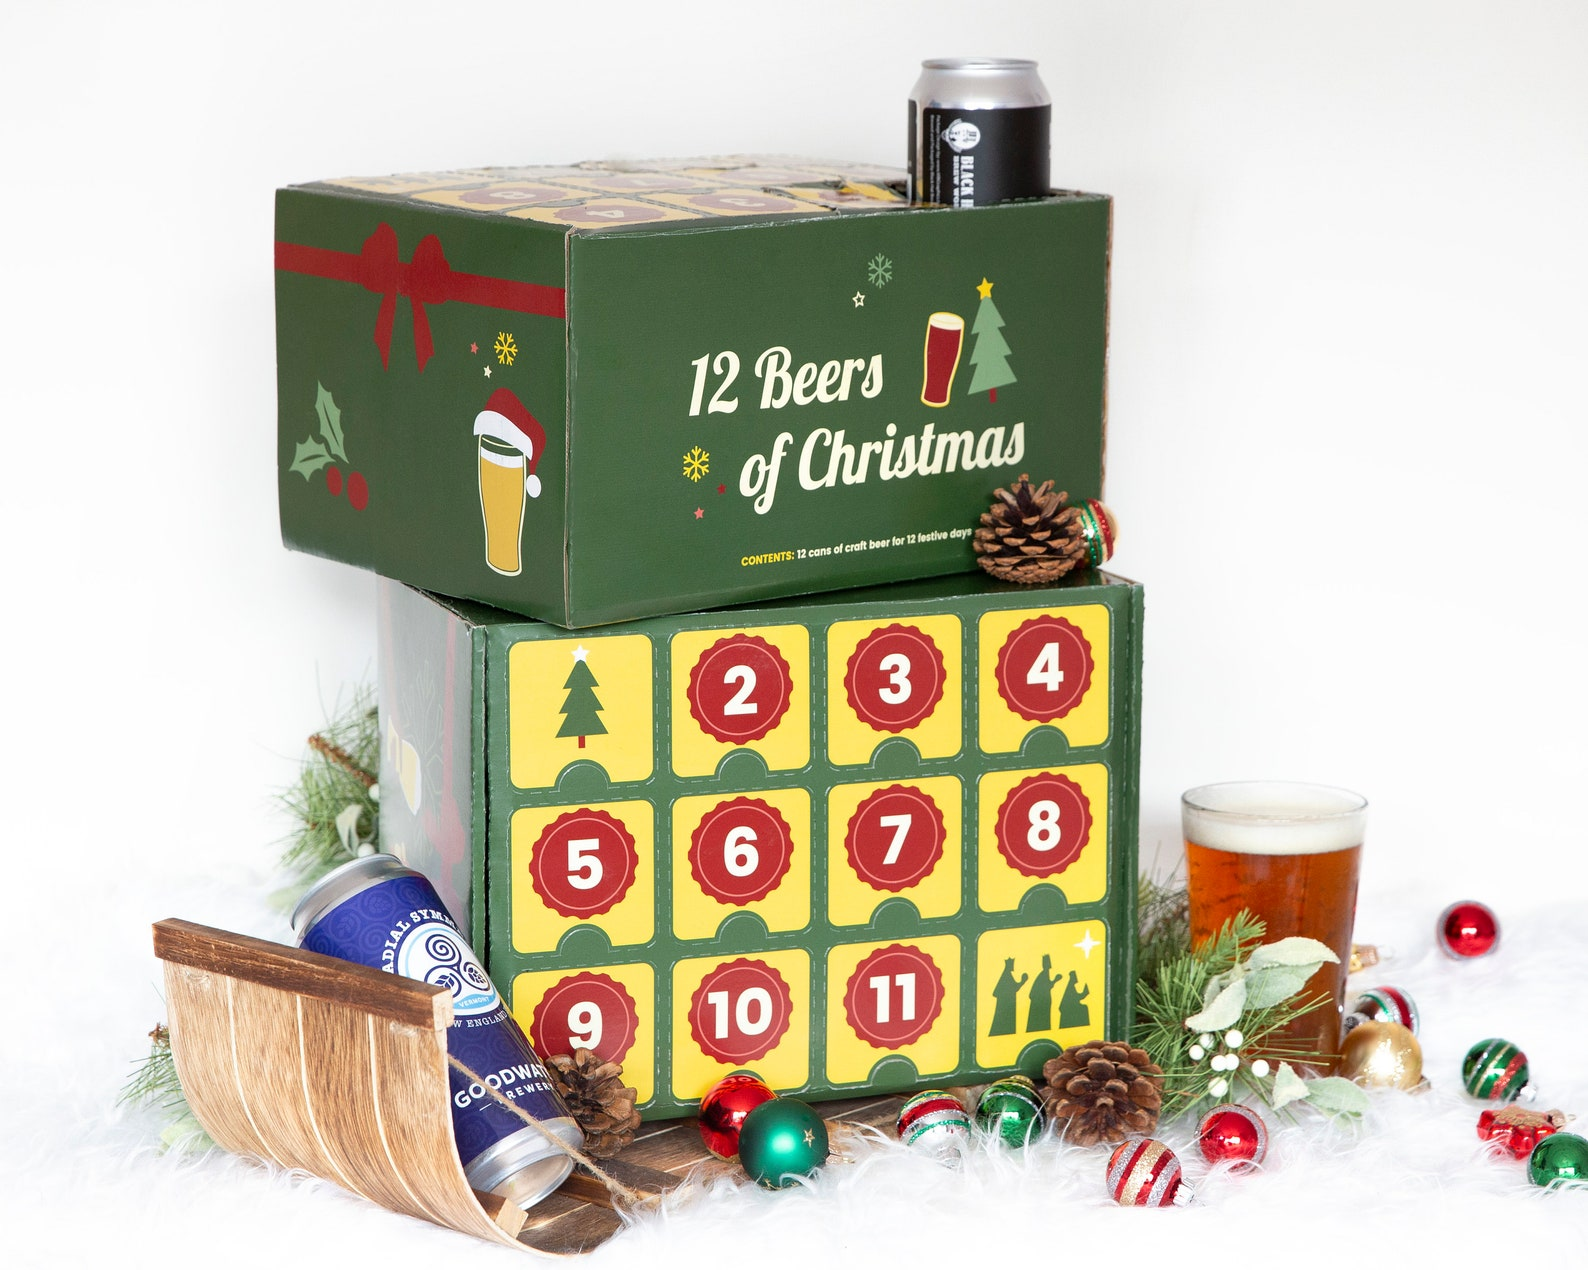 12 Beers of Christmas Holiday Advent Calendar